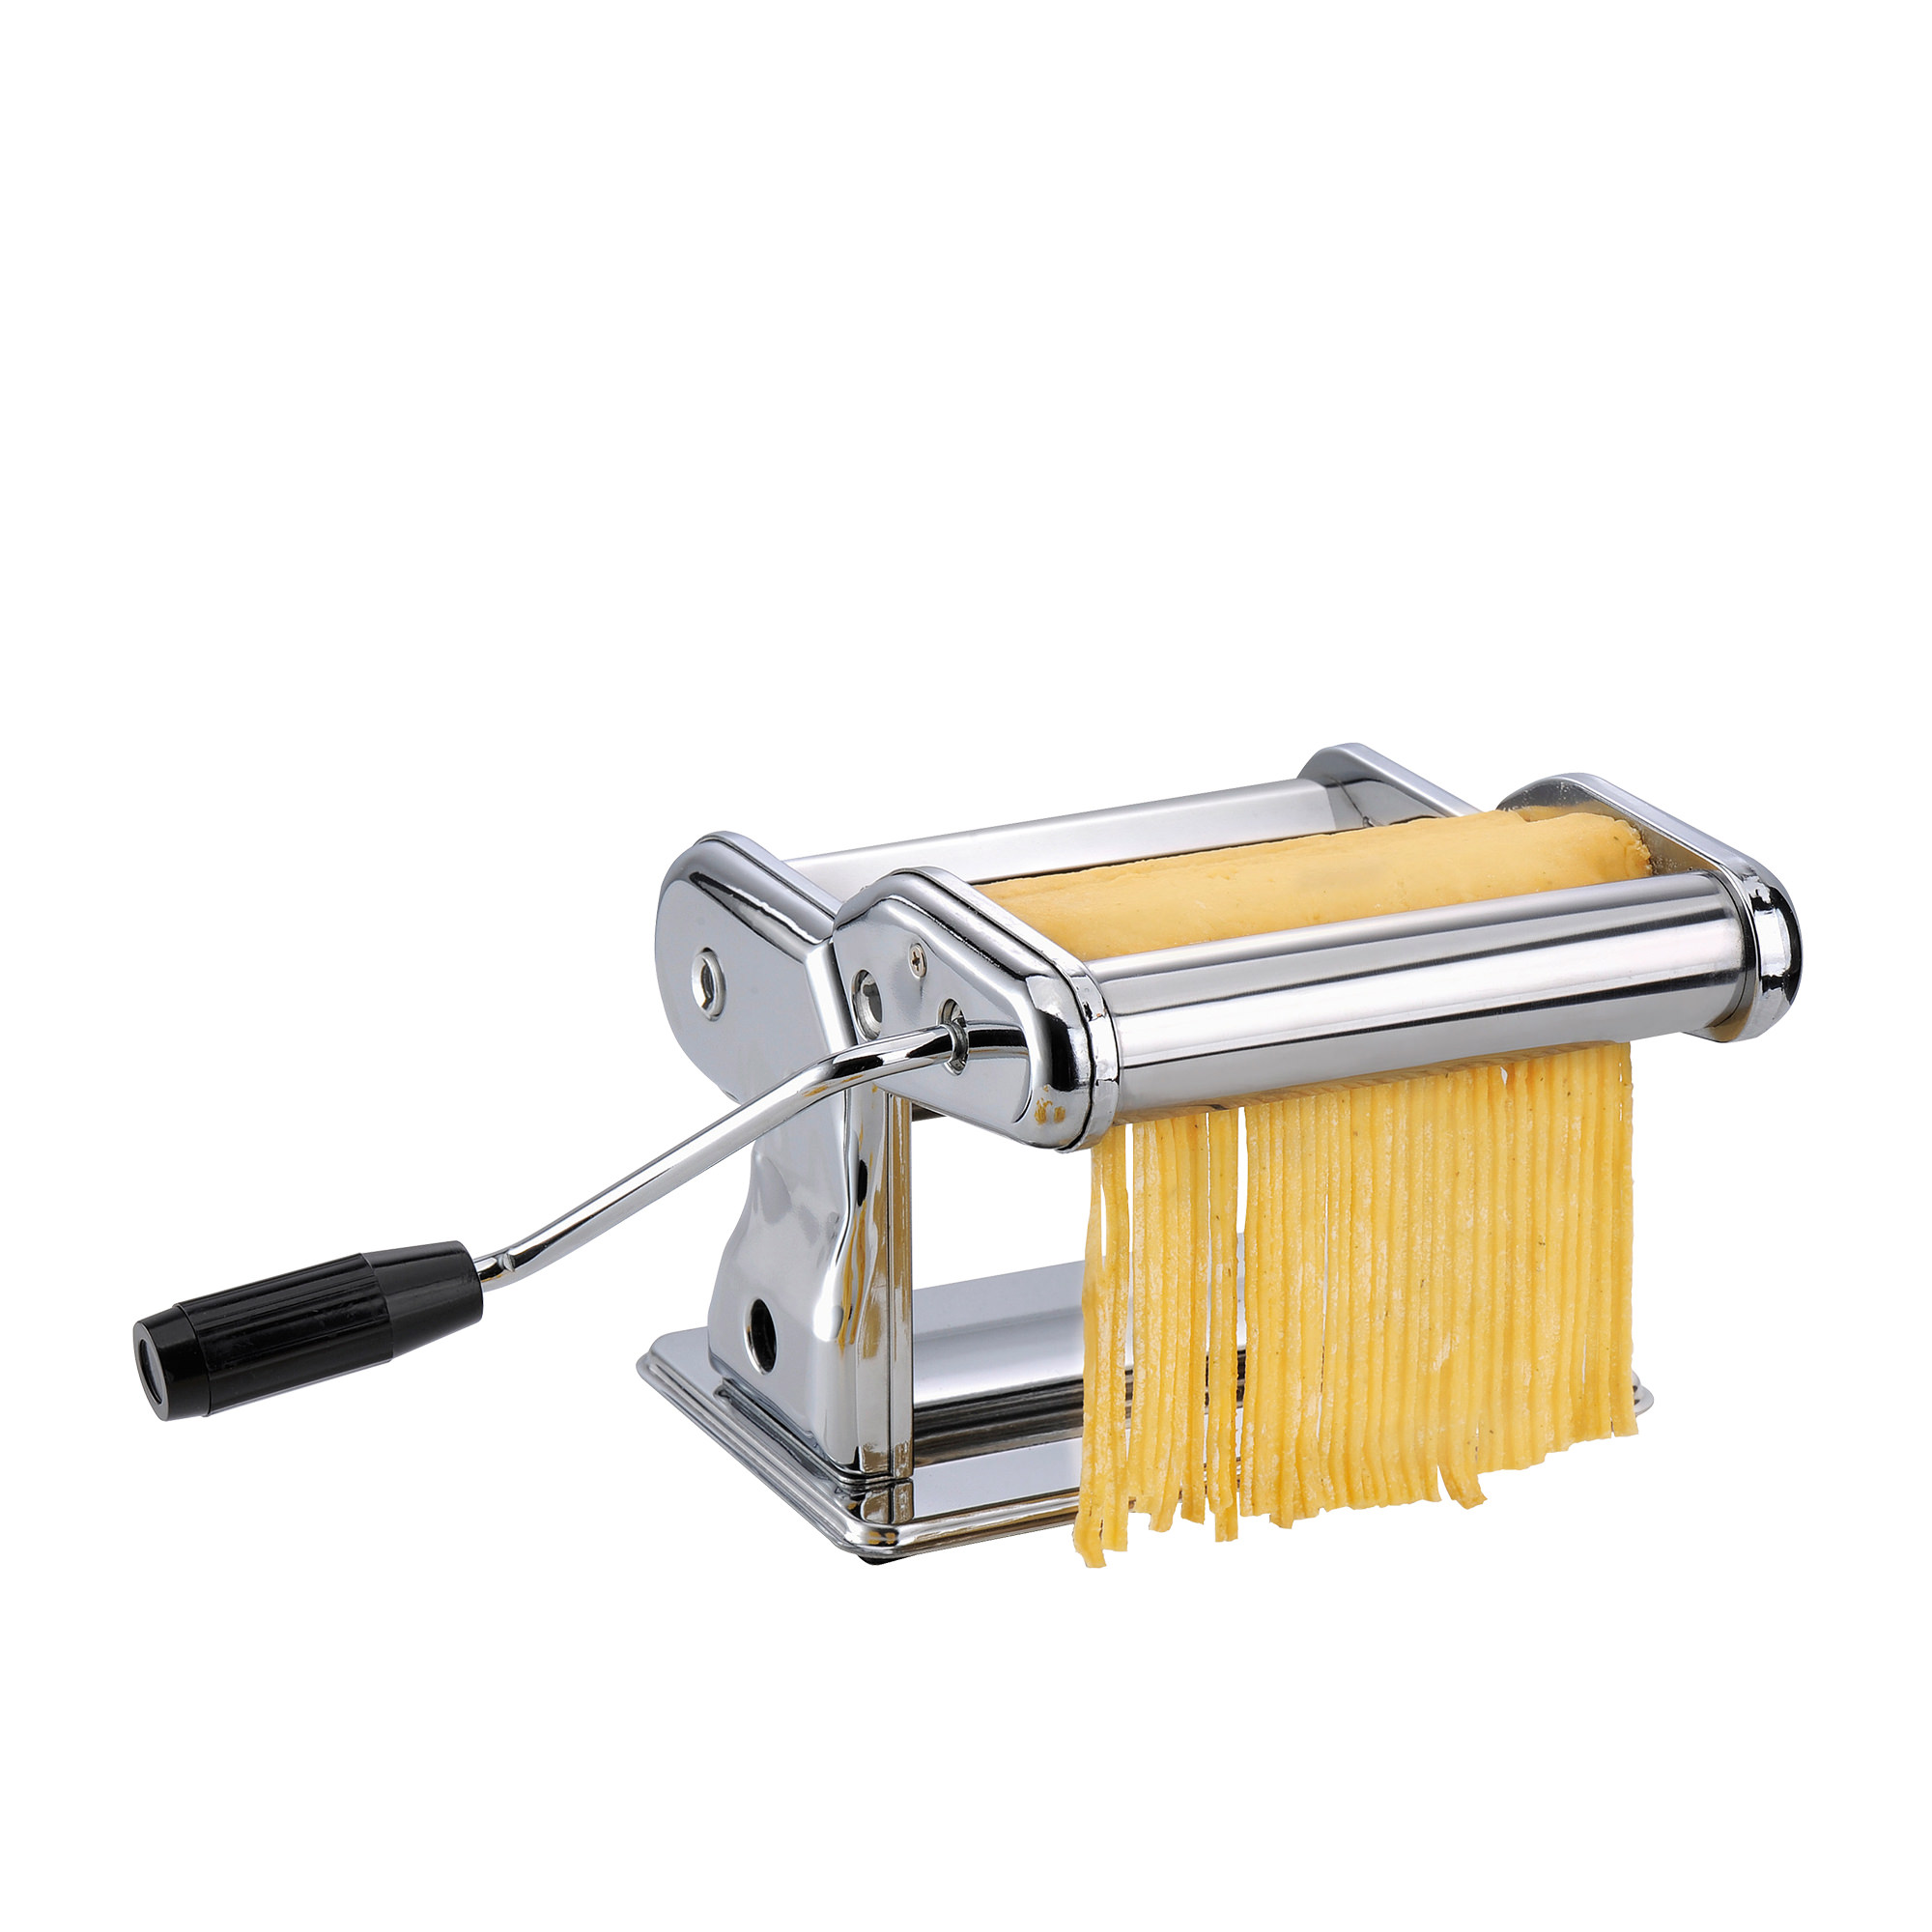 Gefu Perfetta Brillante Pasta Machine